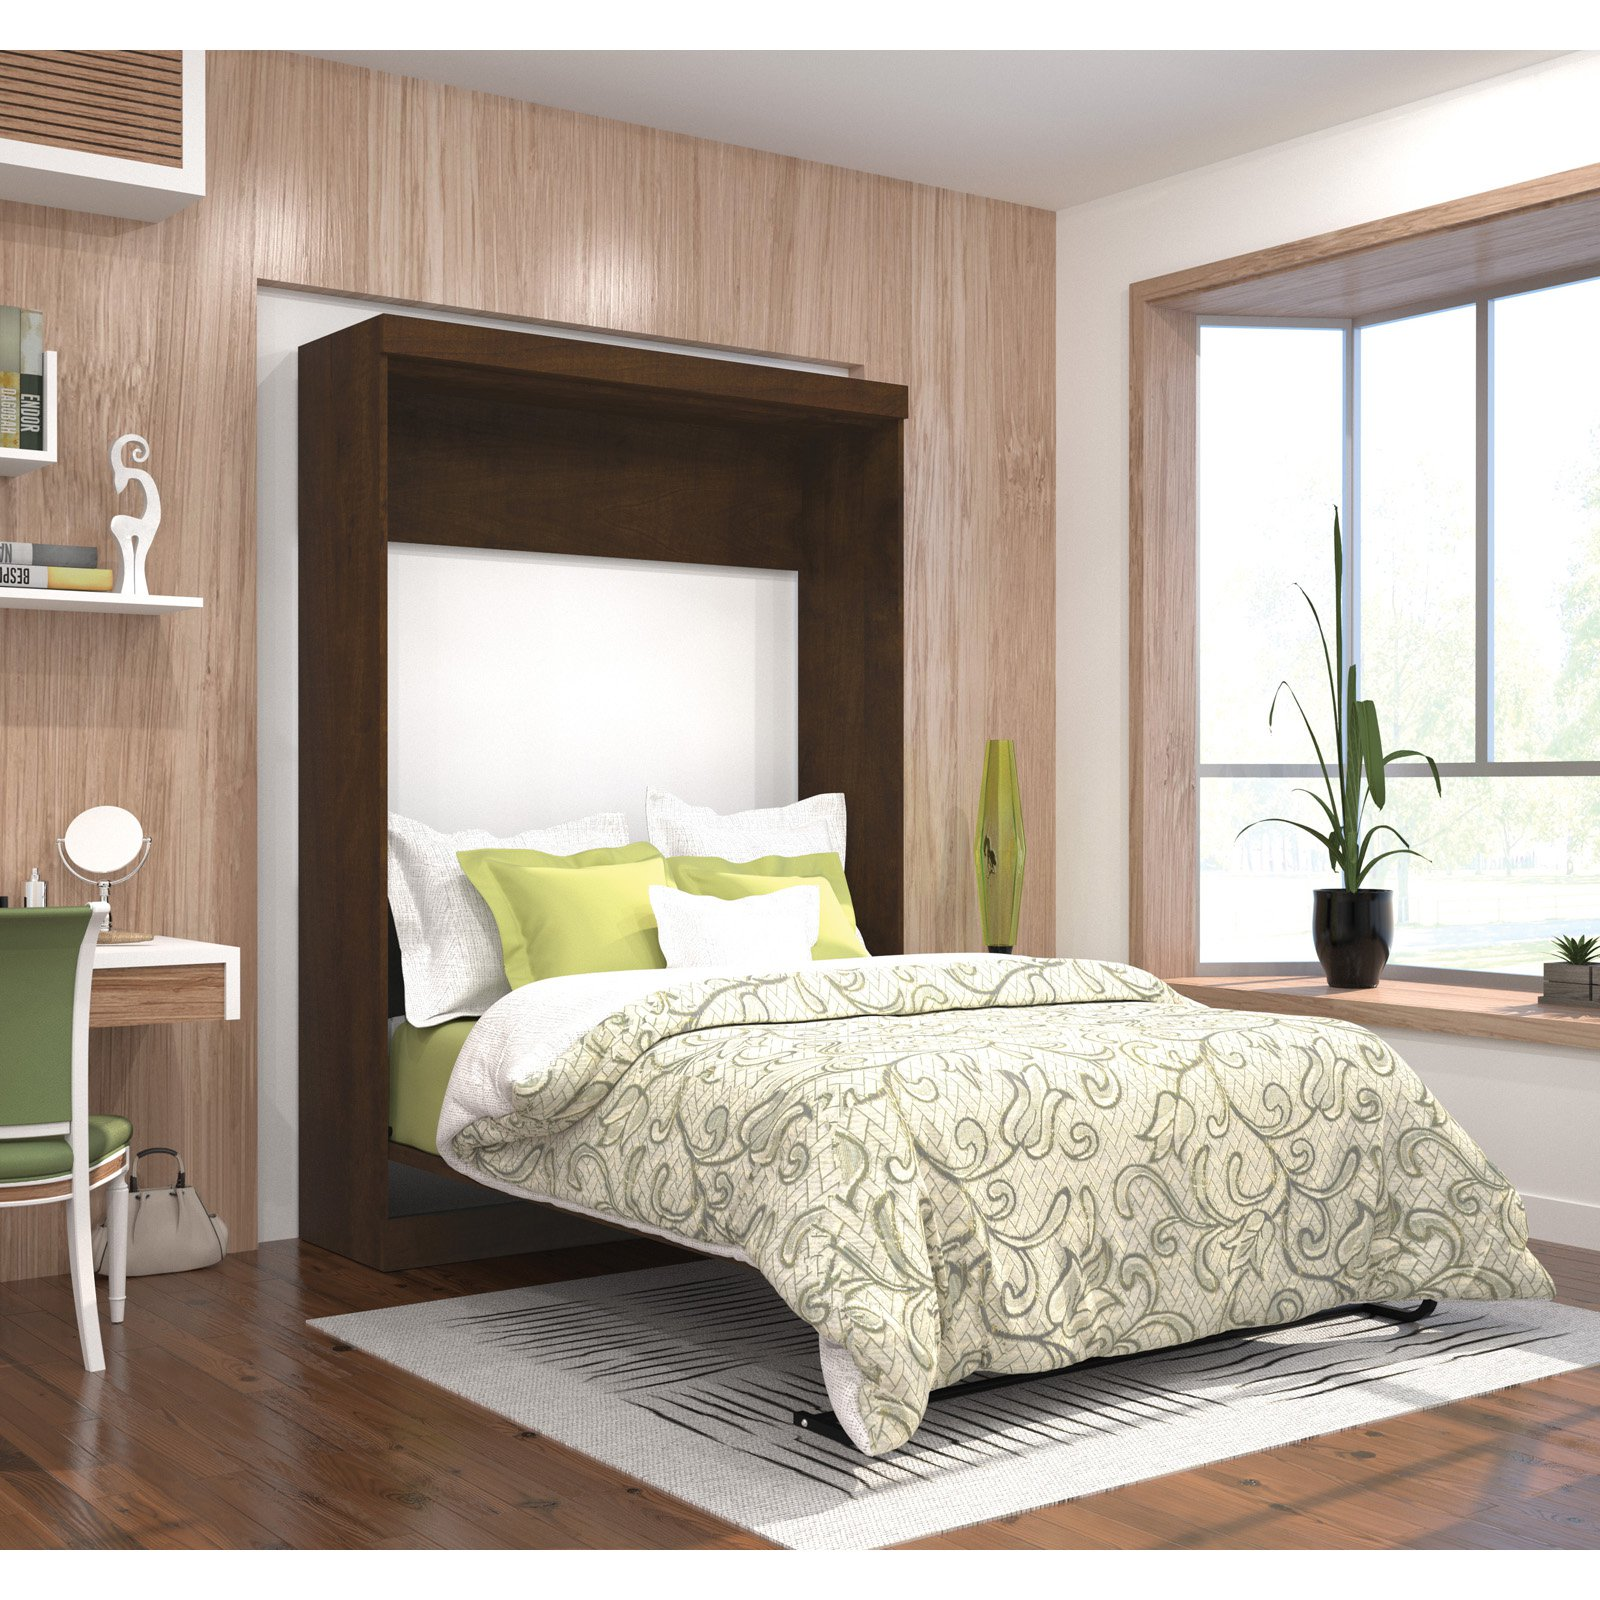 Pur by Bestar Full Wall bed in Chocolate